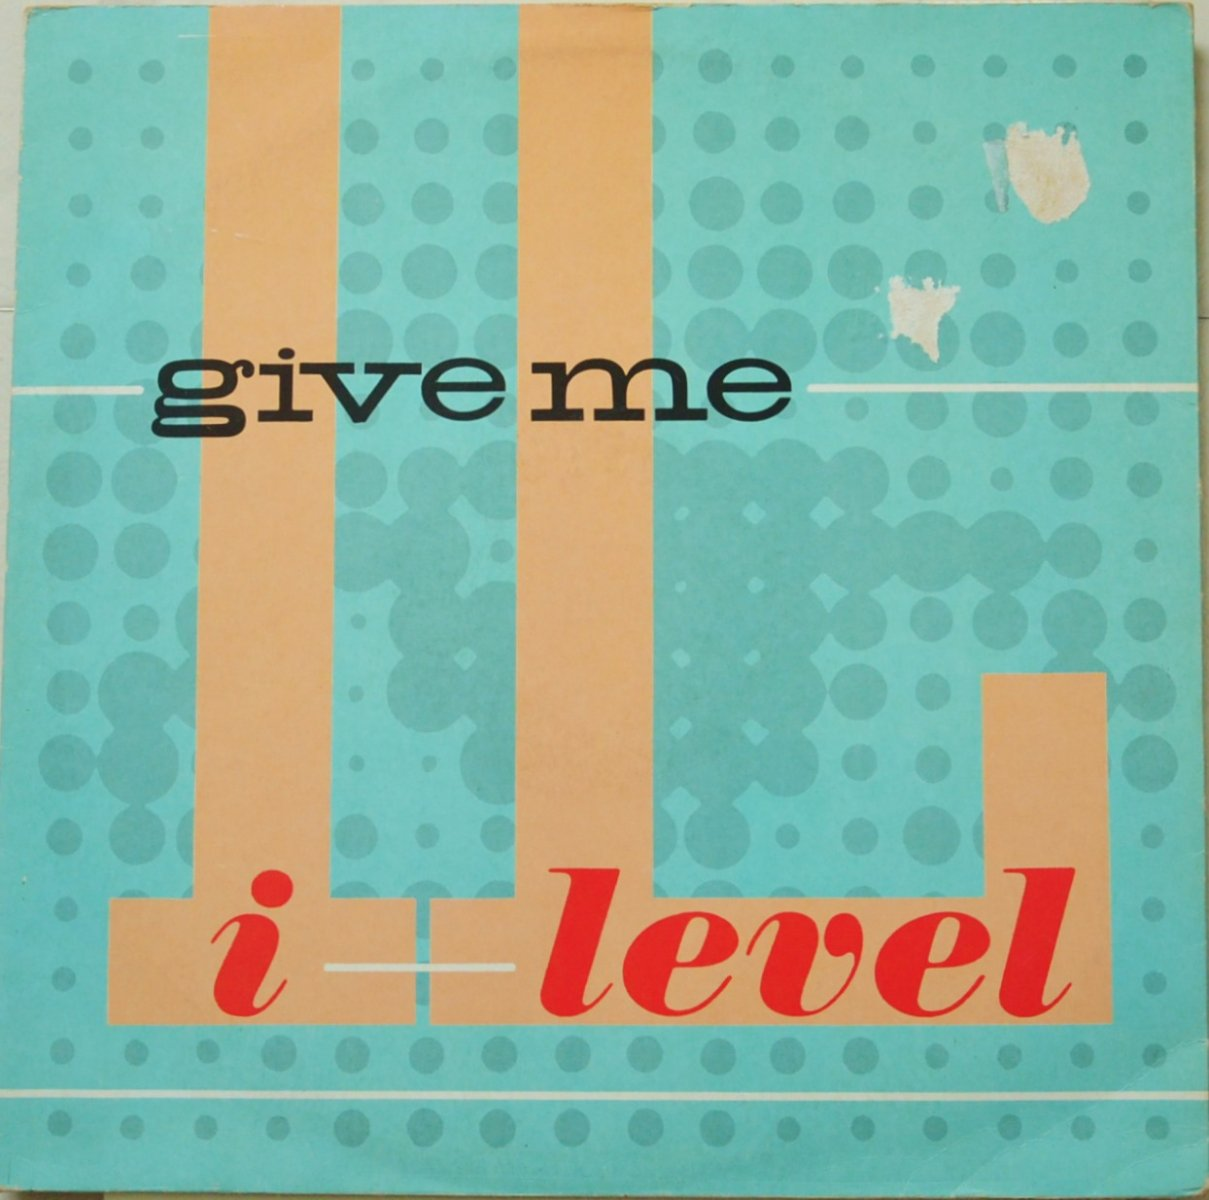 I-LEVEL / GIVE ME / 3 A.M. (GIVE ME) (12